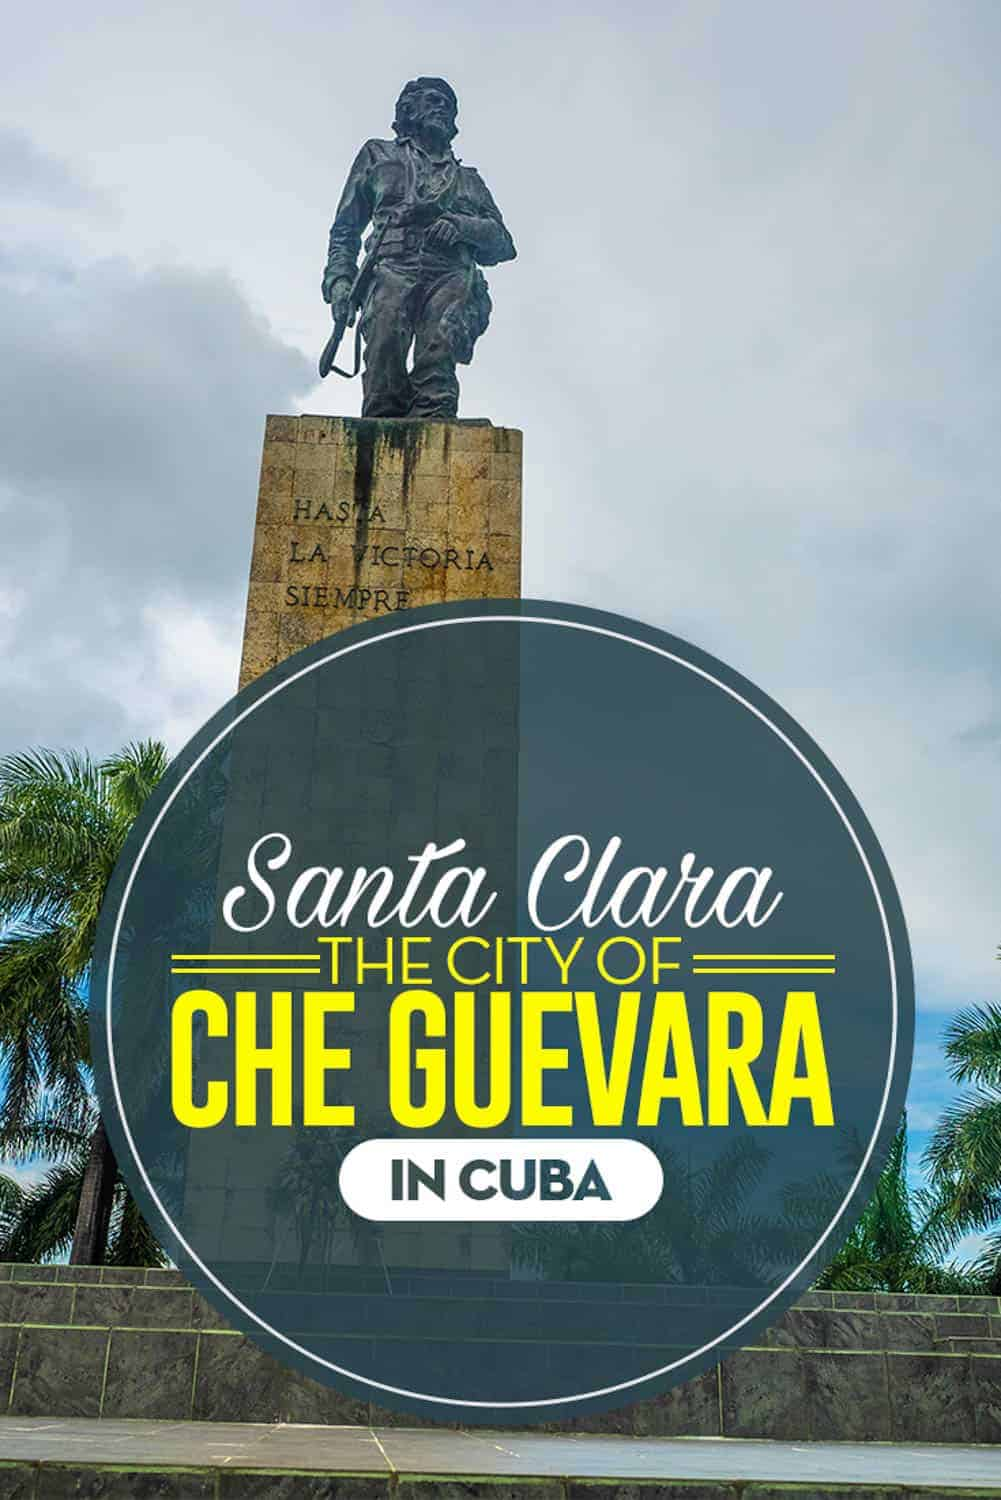 """It was in the city of Santa Clara, in Central Cuba. So it's easy to understand why El Che"""" Guevara's mausoleum was built here."""